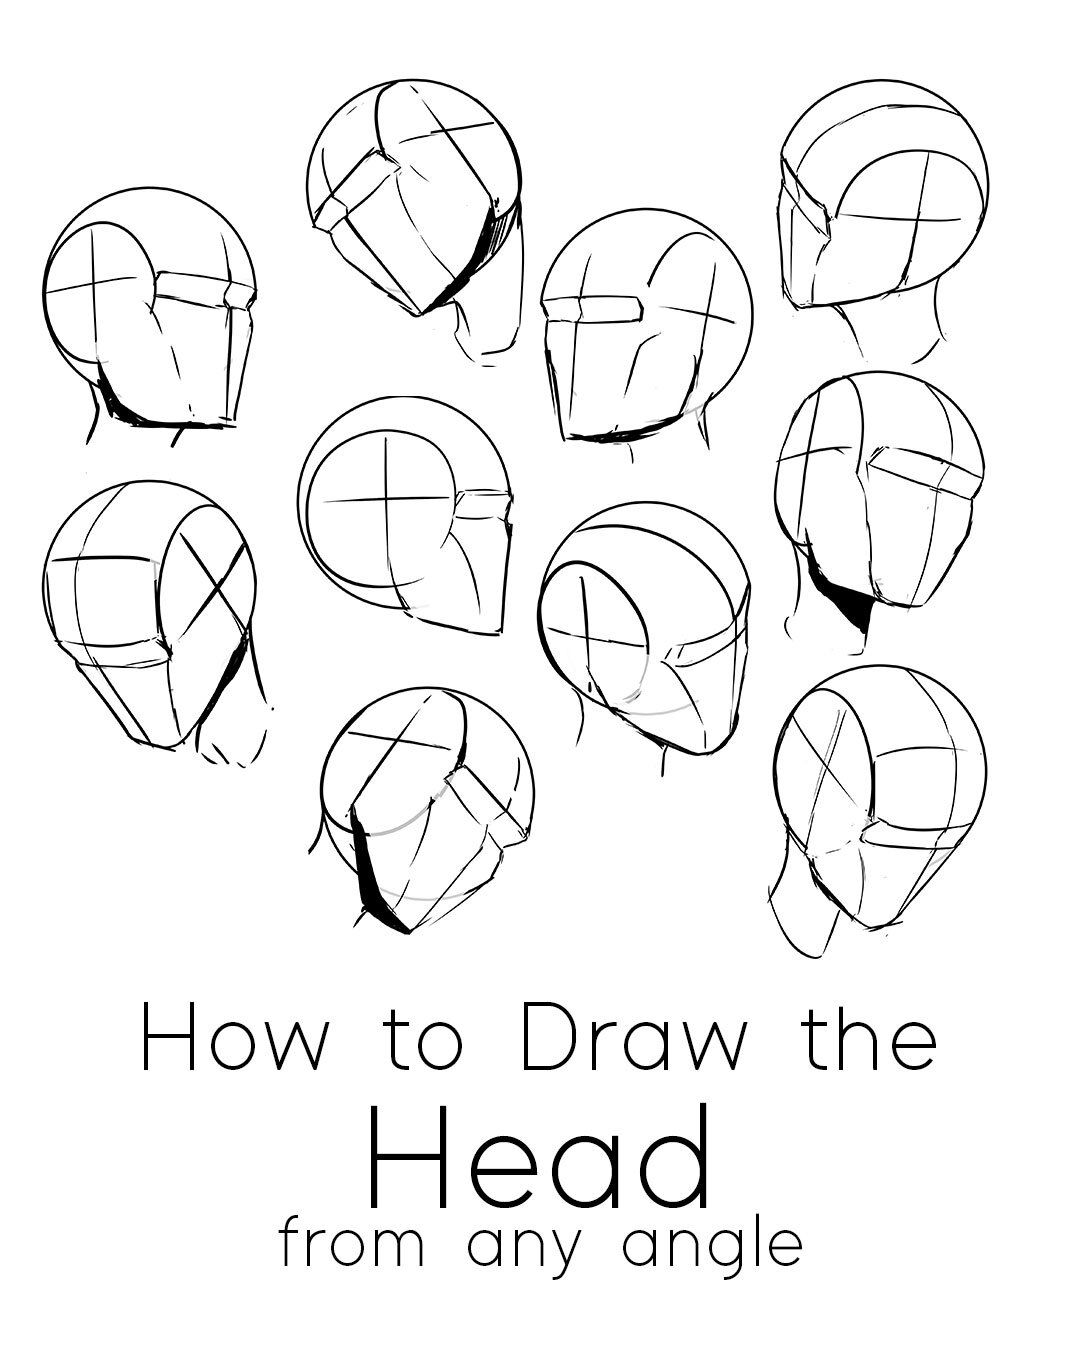 How To Draw The Head From Any Angle Free Pdf Worksheets Video Tutorial Jeyram Character Anime Drawings Sketches Anime Drawings Anime Drawings Tutorials